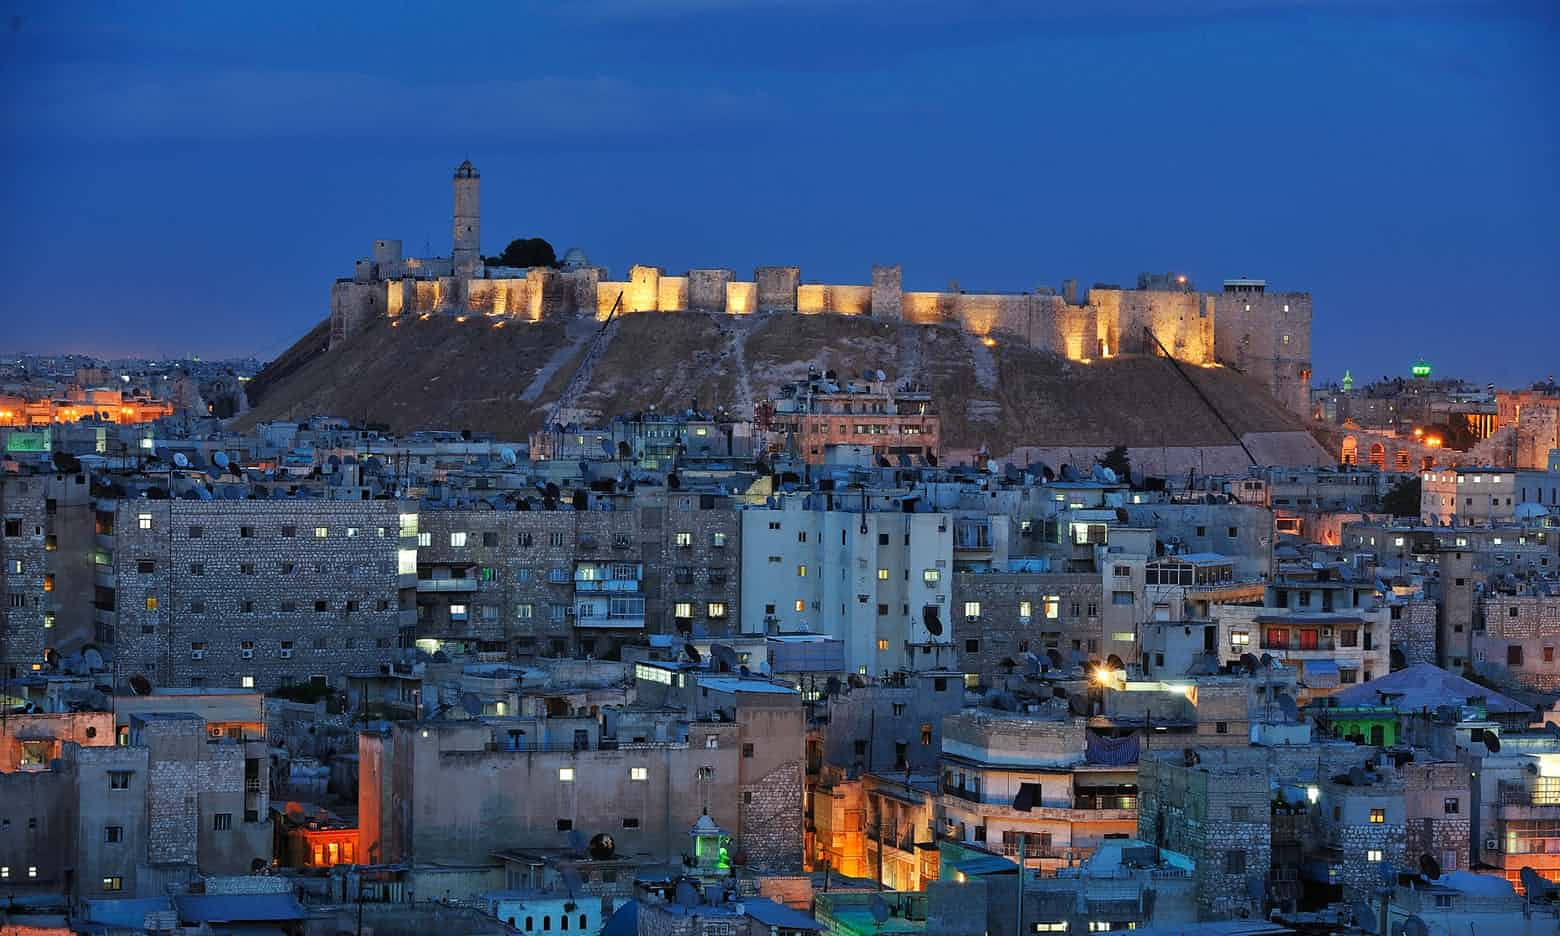 Aleppo's Citadel in 2008. Courtesy of Jean-Baptiste Rabouan/Hemis.fr. Used with permission.